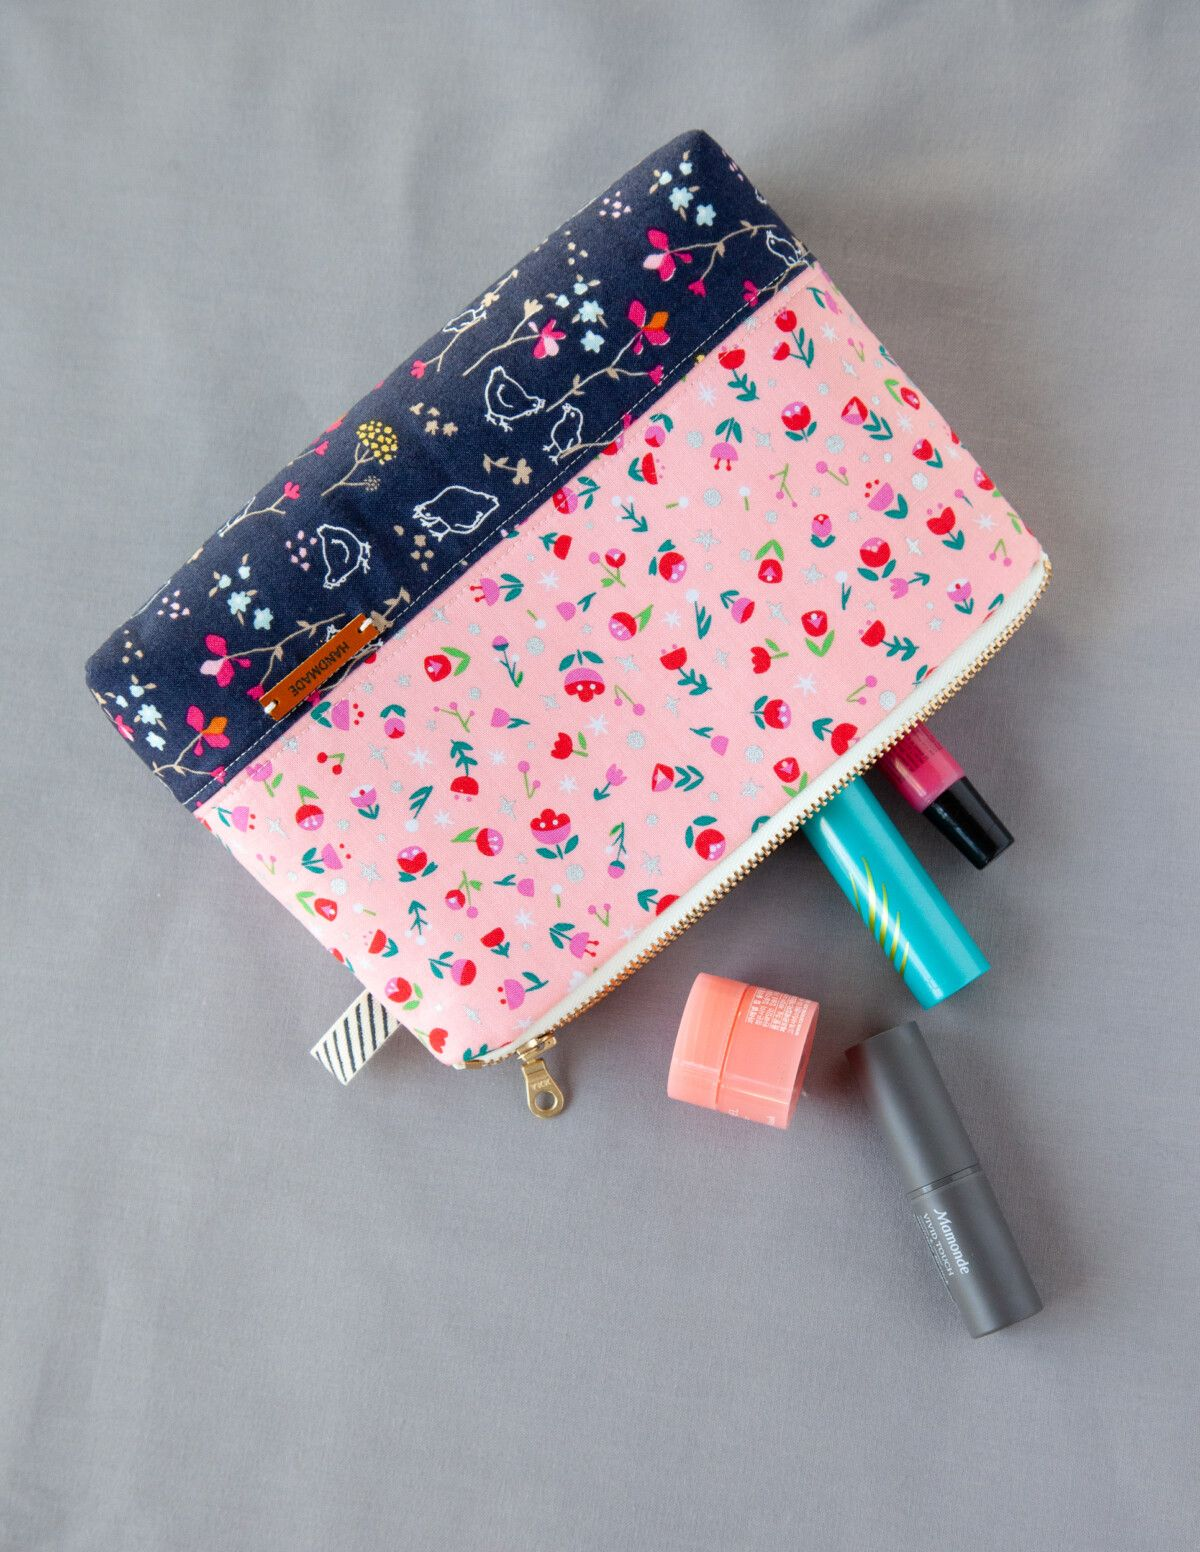 Diy Cosmetic Zipper Pouch Weallsew Diy Pouch No Zipper Cosmetic Bag Pattern Pouch Diy